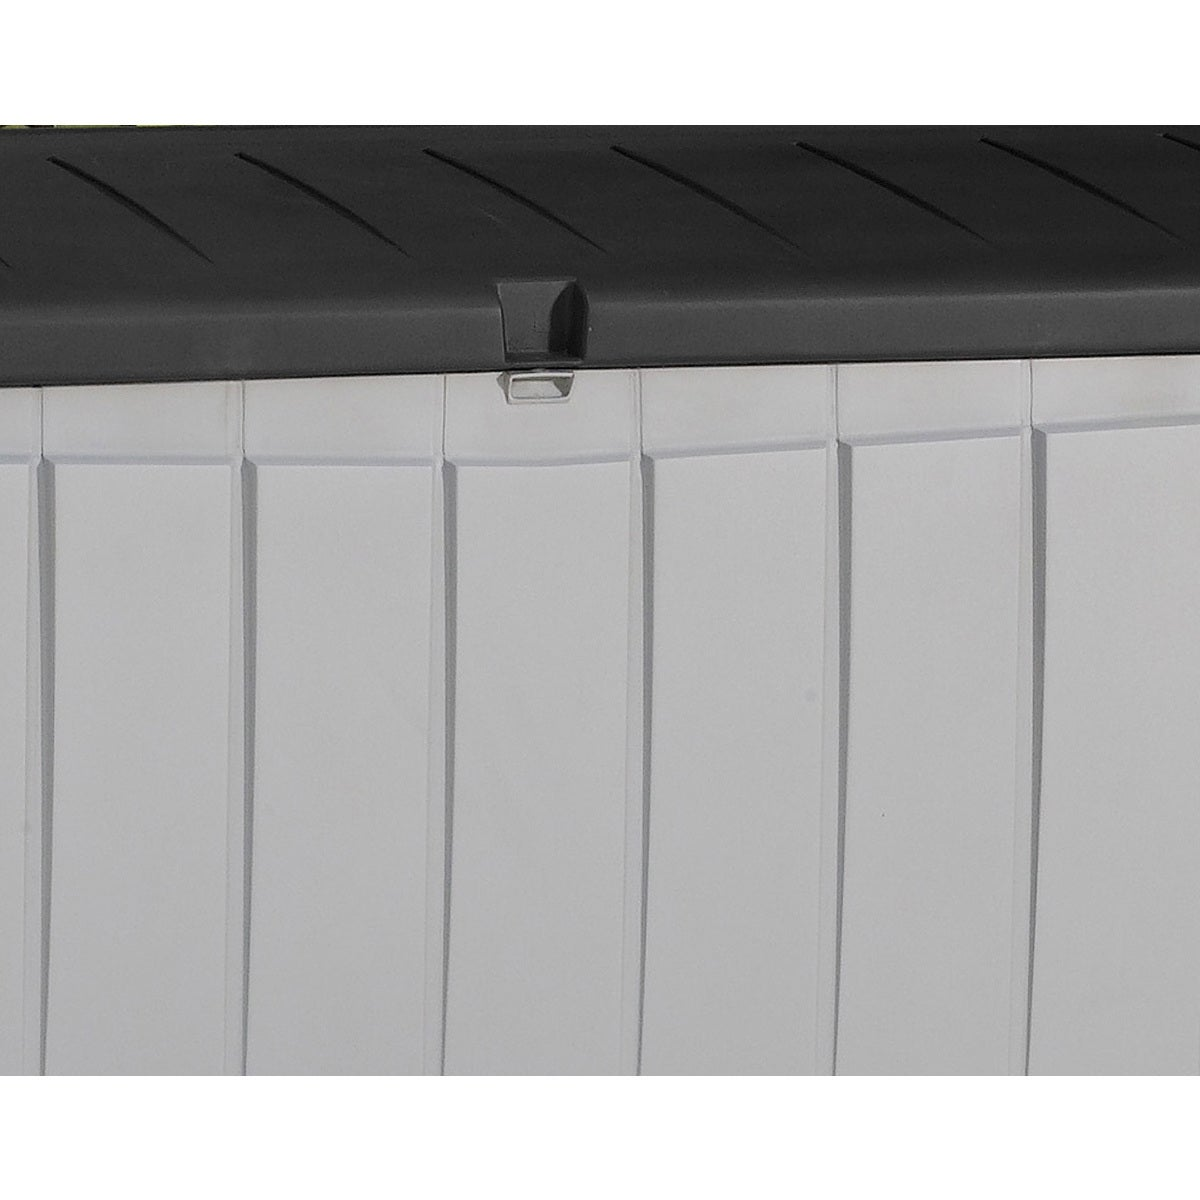 Good Keter Novel 90 Gallon Black And Grey Plastic Deck Storage Box   Free  Shipping Today   Overstock   19140500